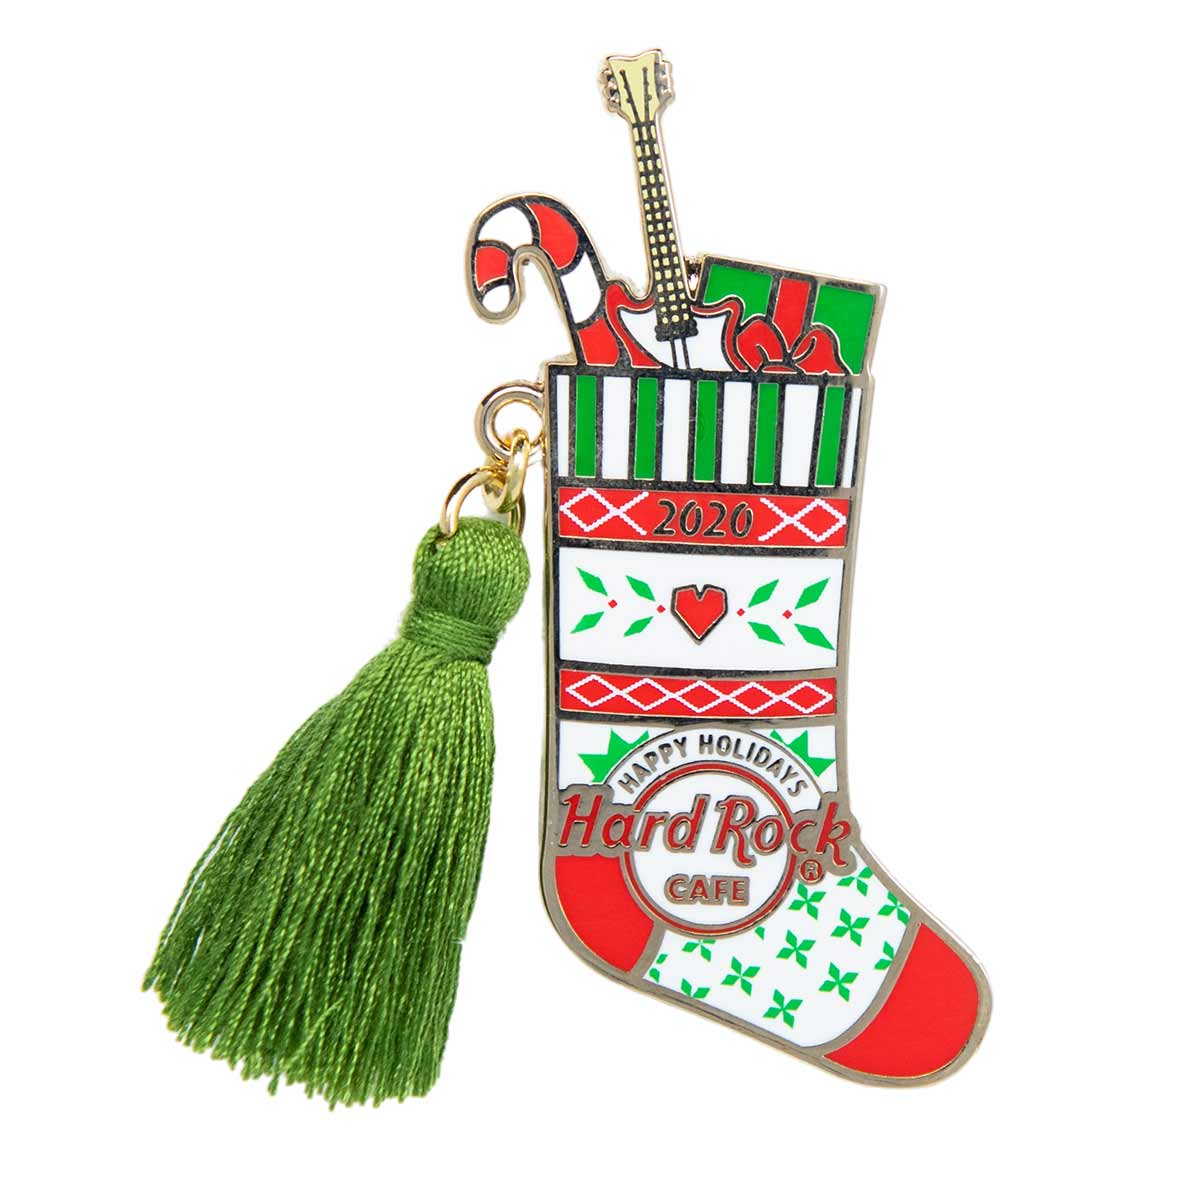 2020 Holiday Stocking Online Only Pin